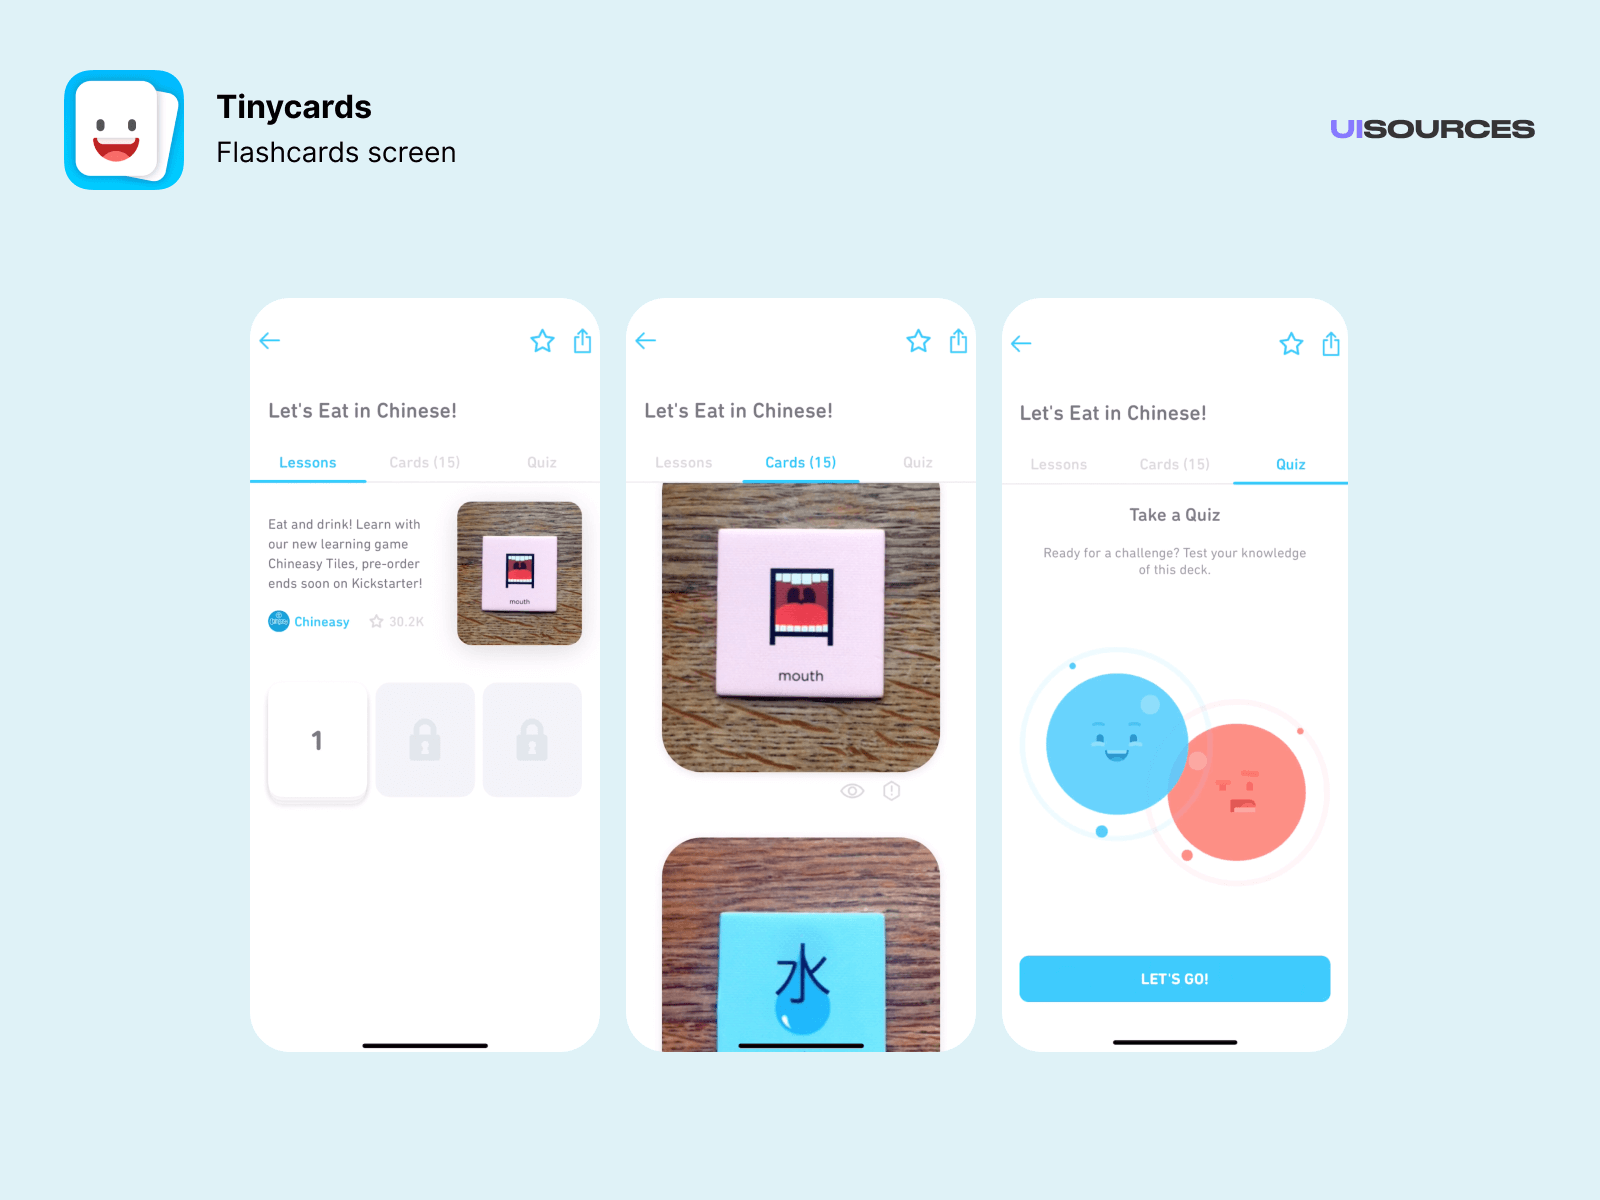 Flashcards screen